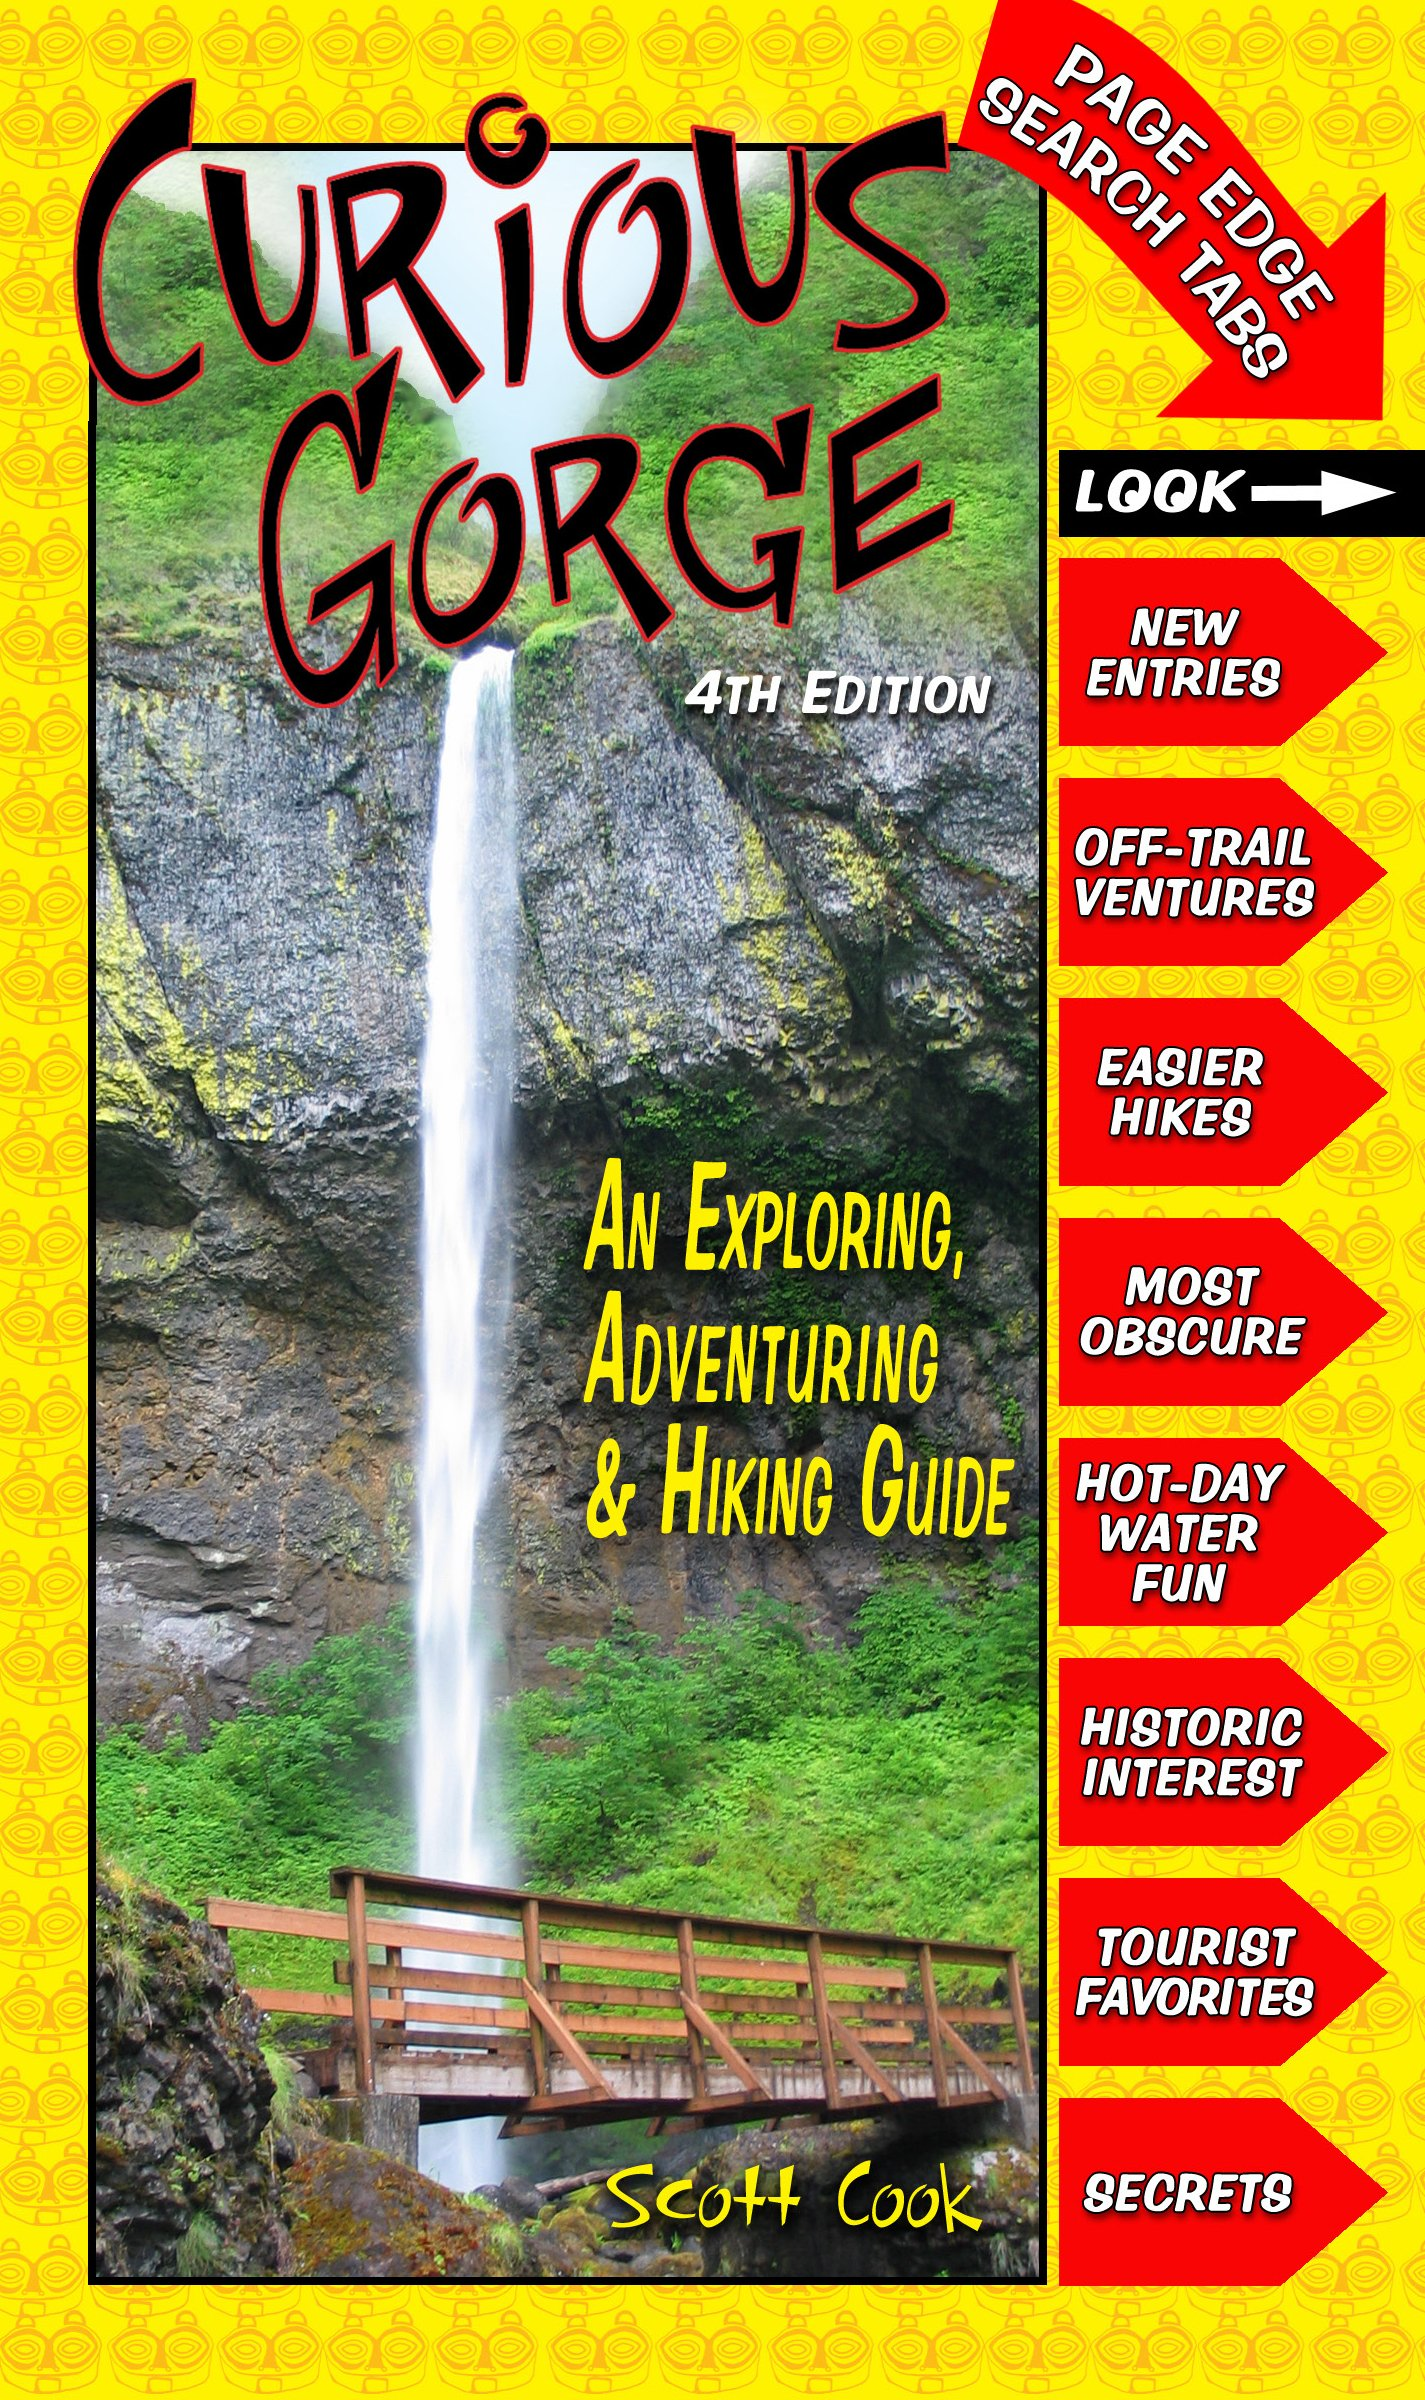 Curious-Gorge-4th-Edition-Book_112444A.jpg